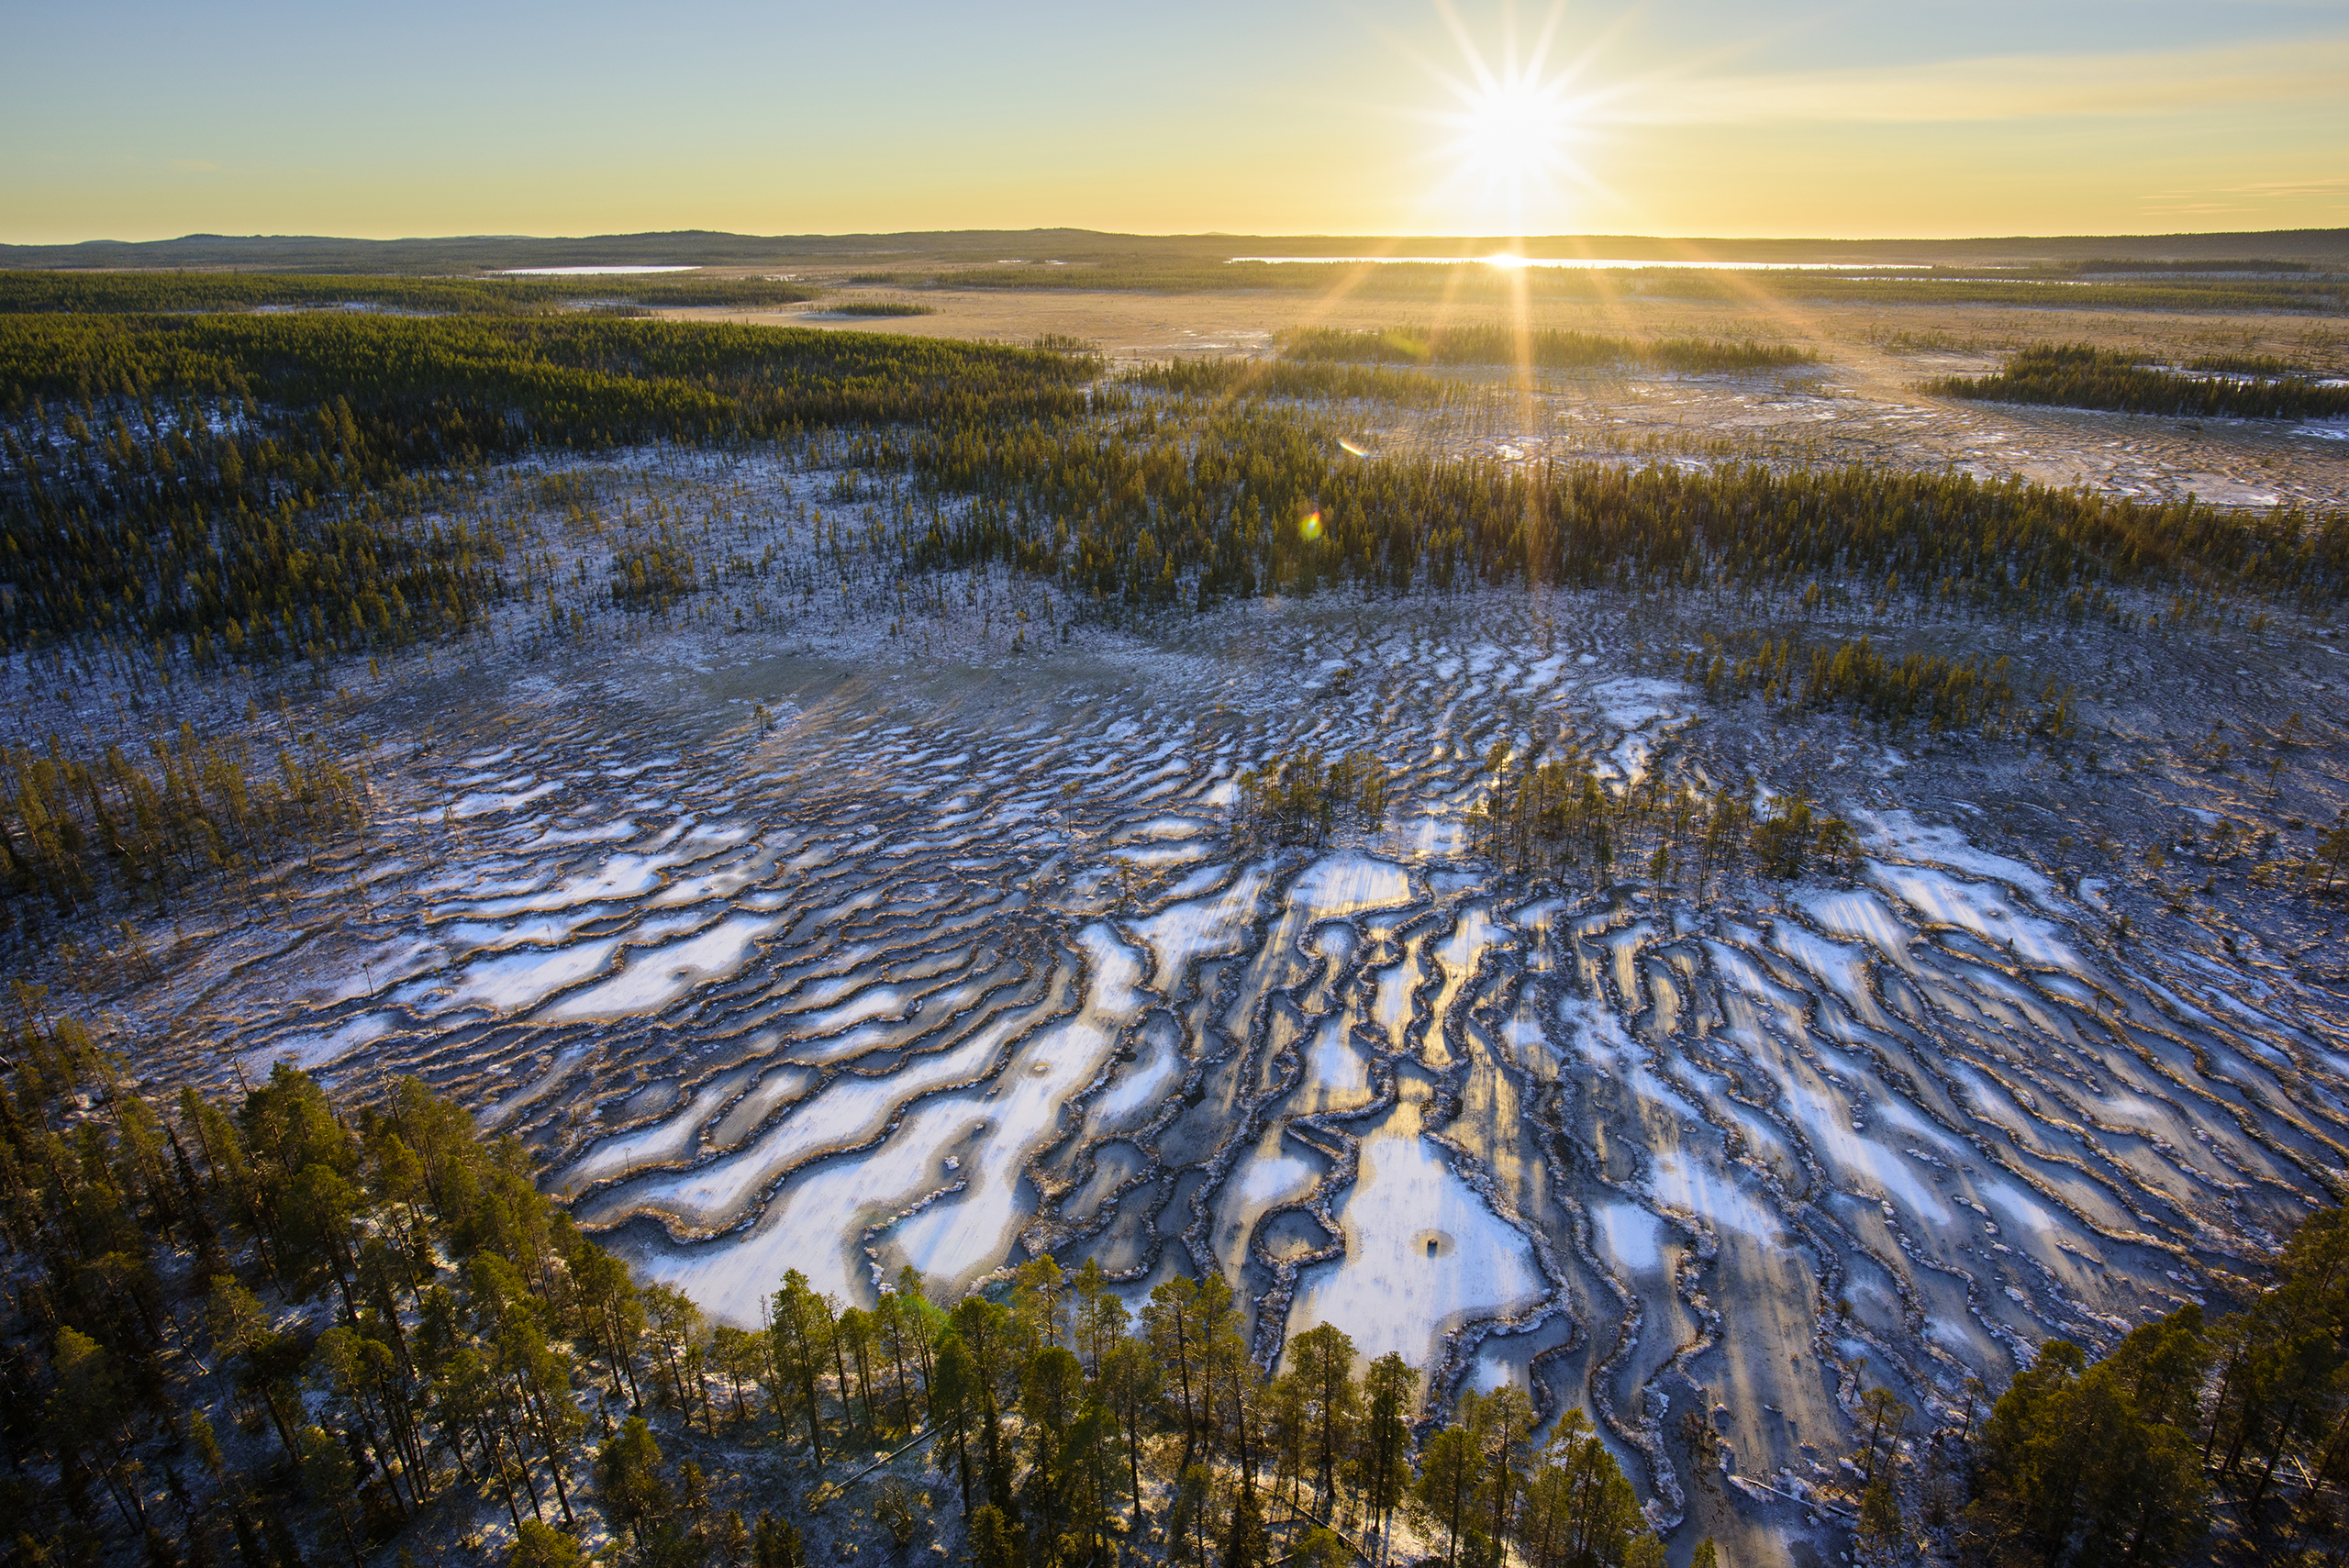 Muddus National Park, Sweden. This park in the Lapland province of northern Sweden is home to old-growth forests, bogs, ravines, and Sweden's oldest known pine tree.